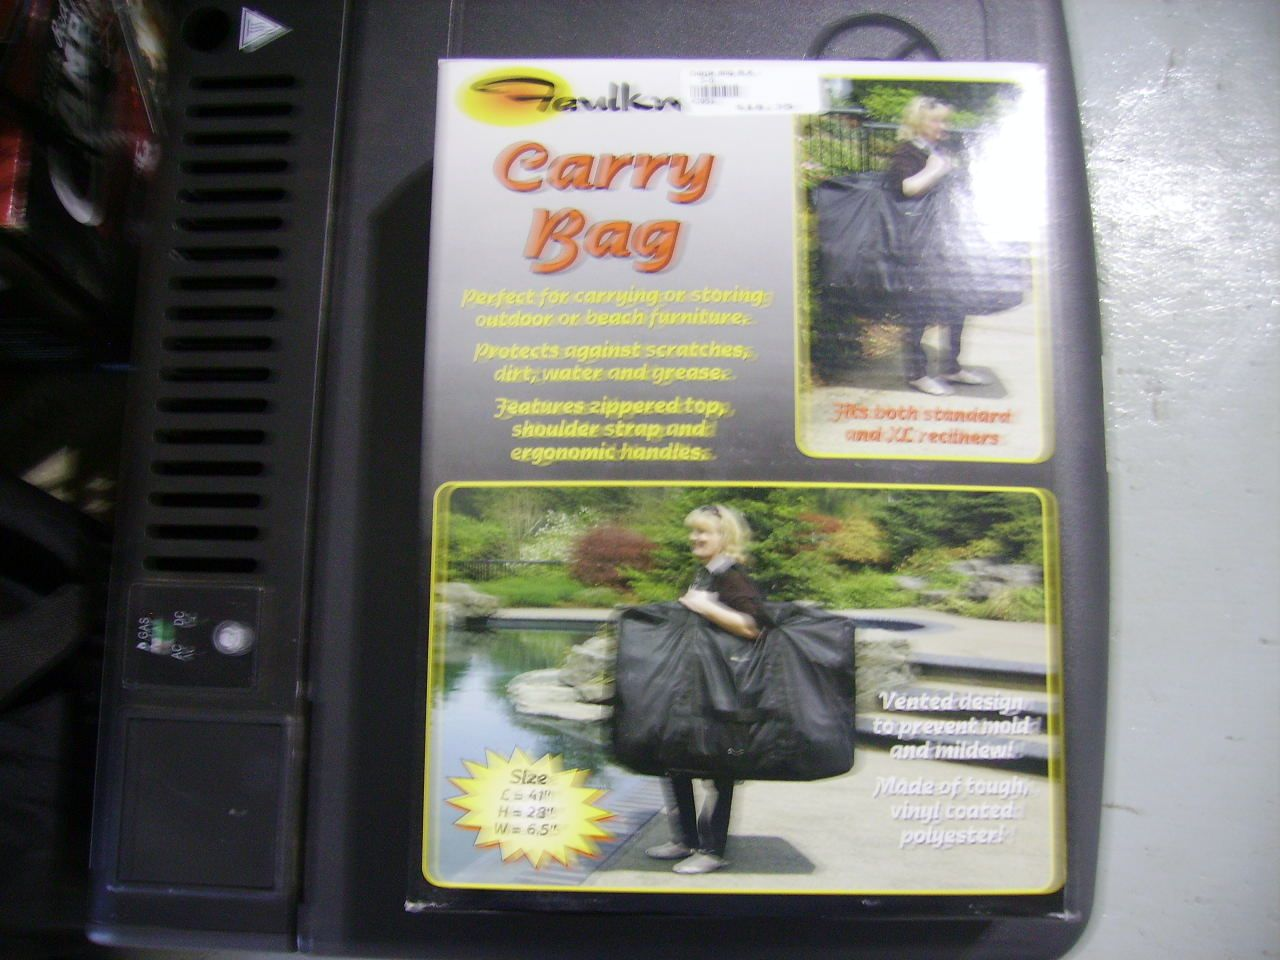 RV Carry Bag For All Your Stuff! Used campers, Carry on